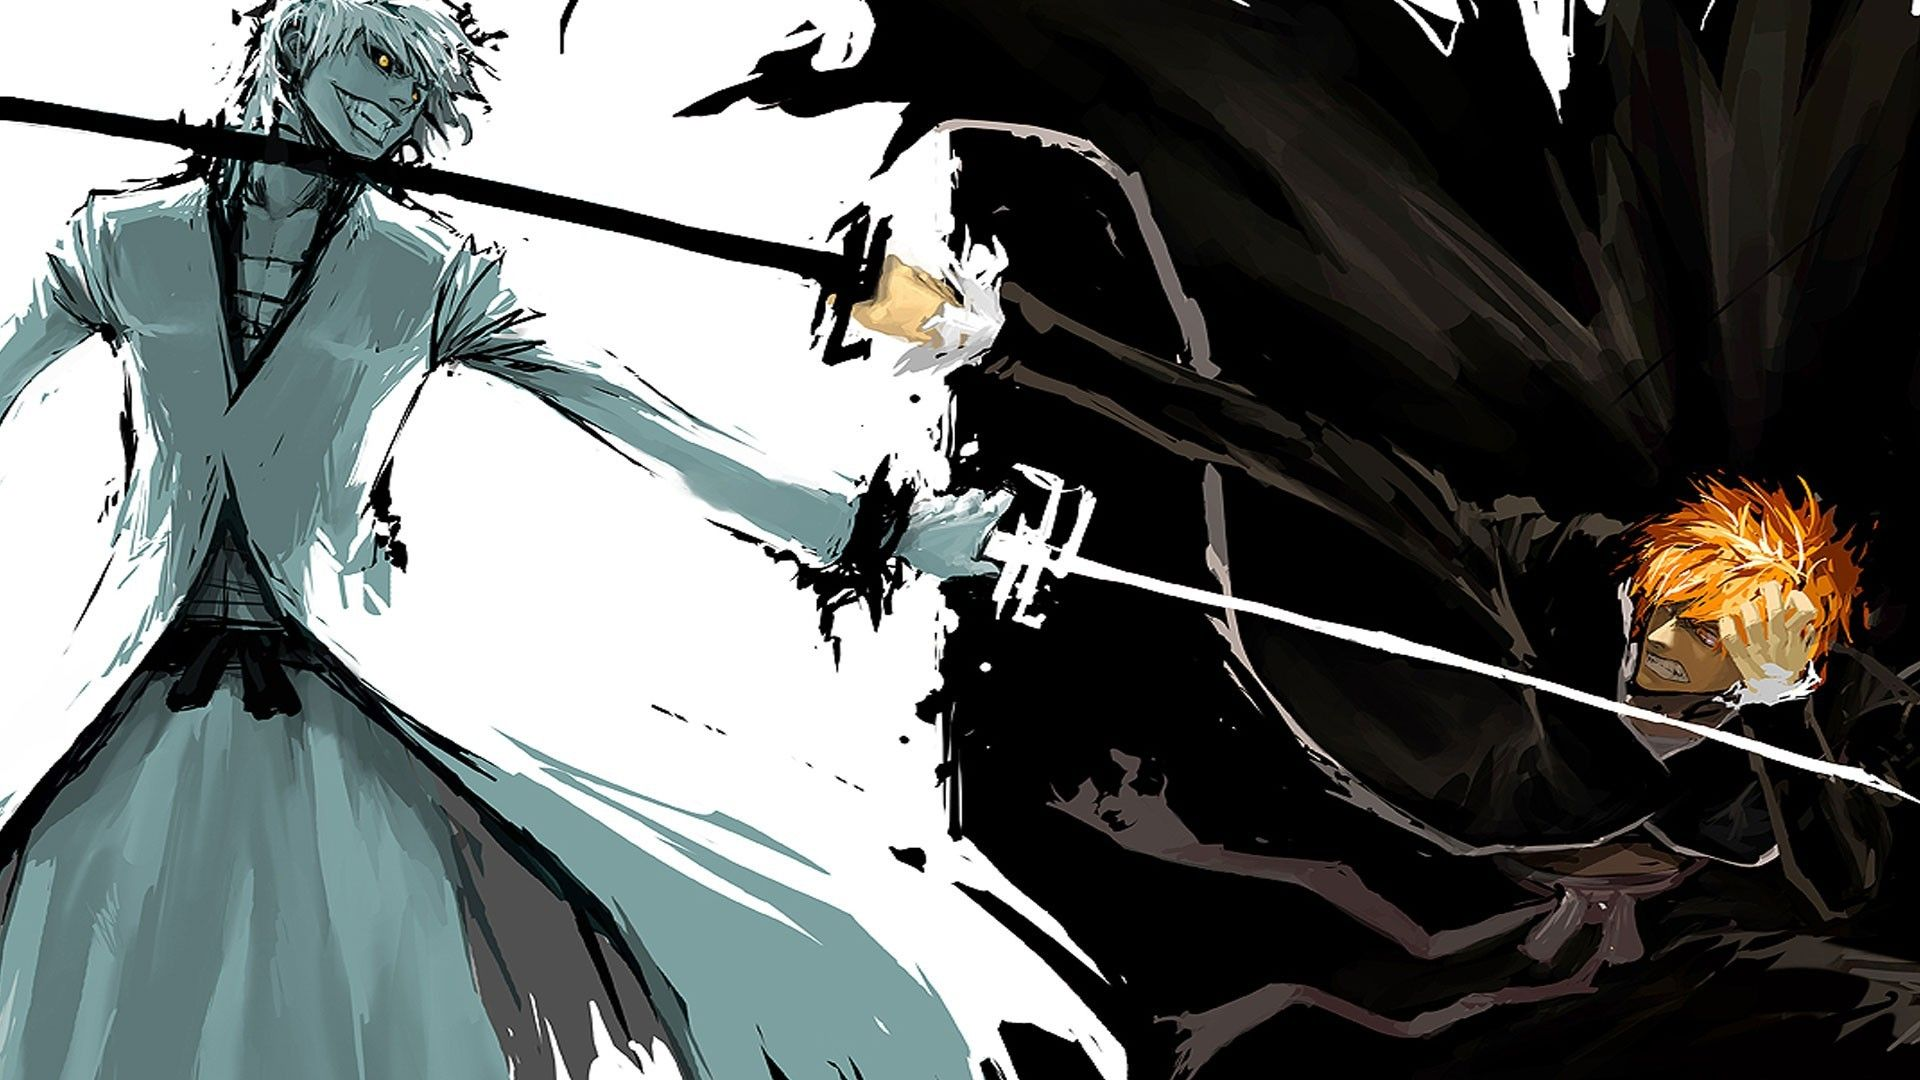 Hd bleach wallpaper anime forums anime news more cool bleach backgrounds wallpapers